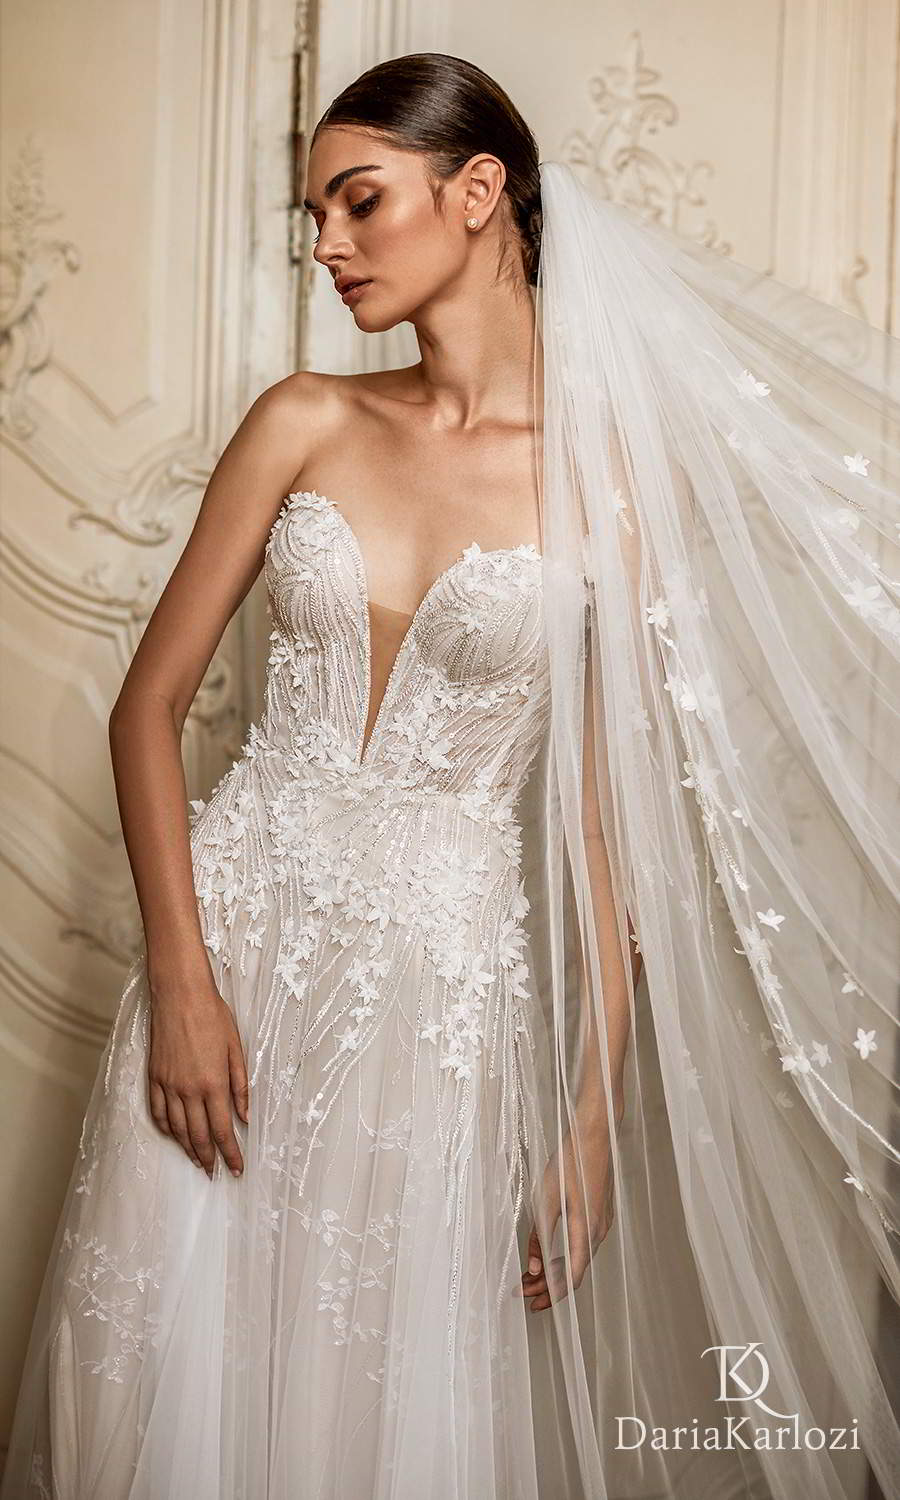 daria karlozi 2021 graceful dream bridal strapless sweetheart neckline fully embellished a line ball gown wedding dress (inspiration) zv